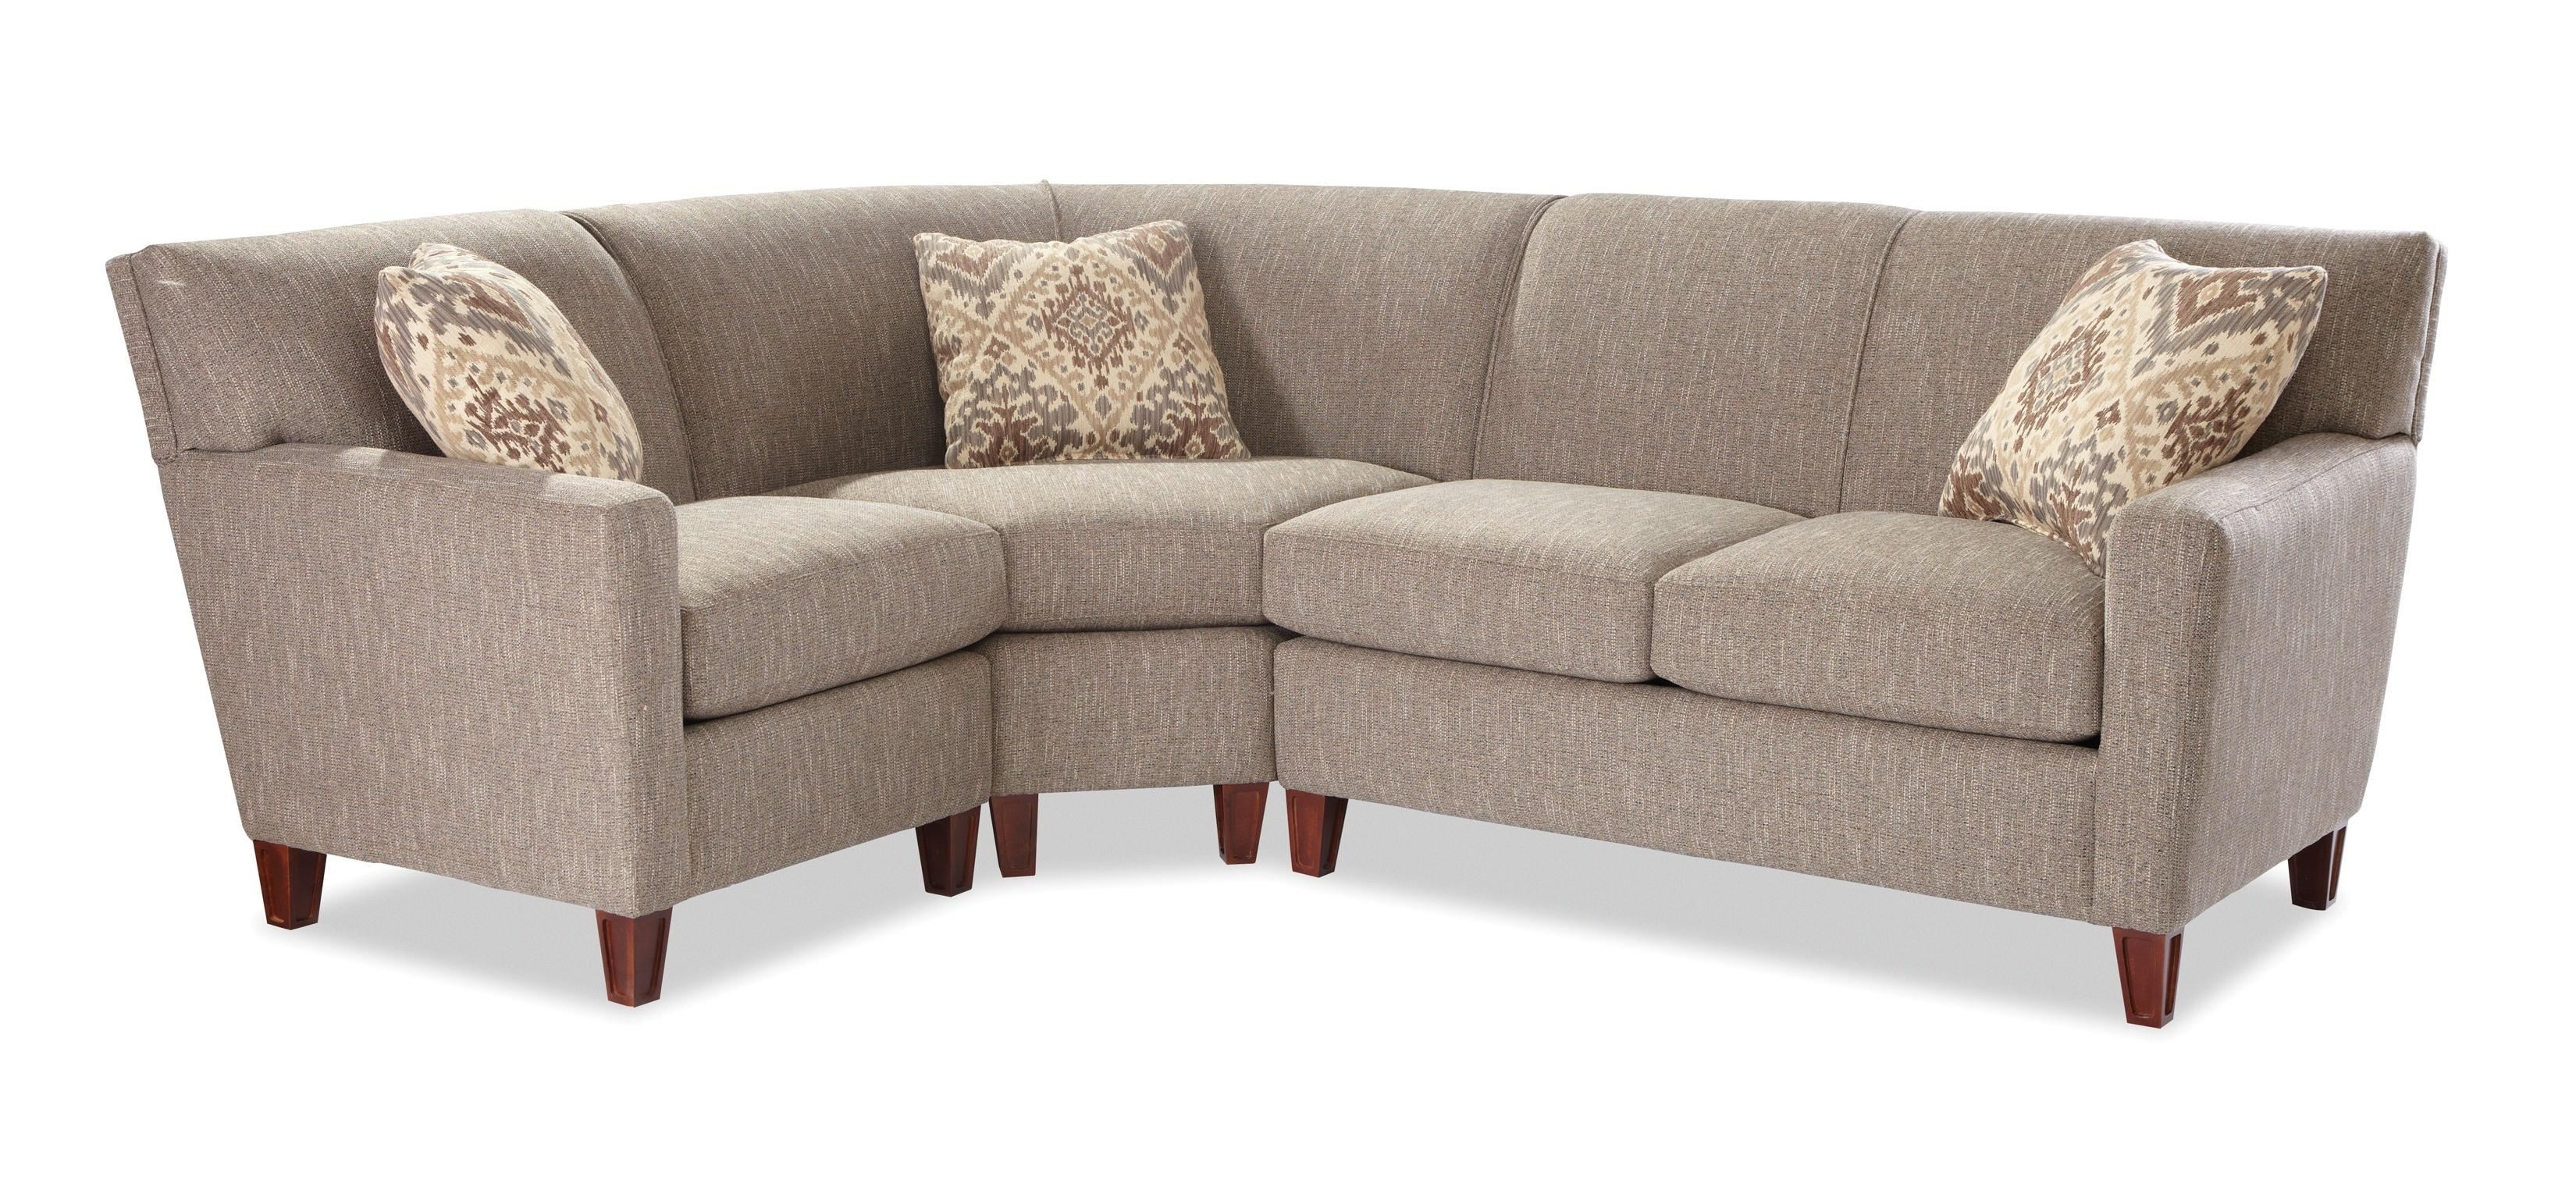 Laf Sofa Raf Loveseat | Baci Living Room For Turdur 2 Piece Sectionals With Laf Loveseat (View 4 of 25)